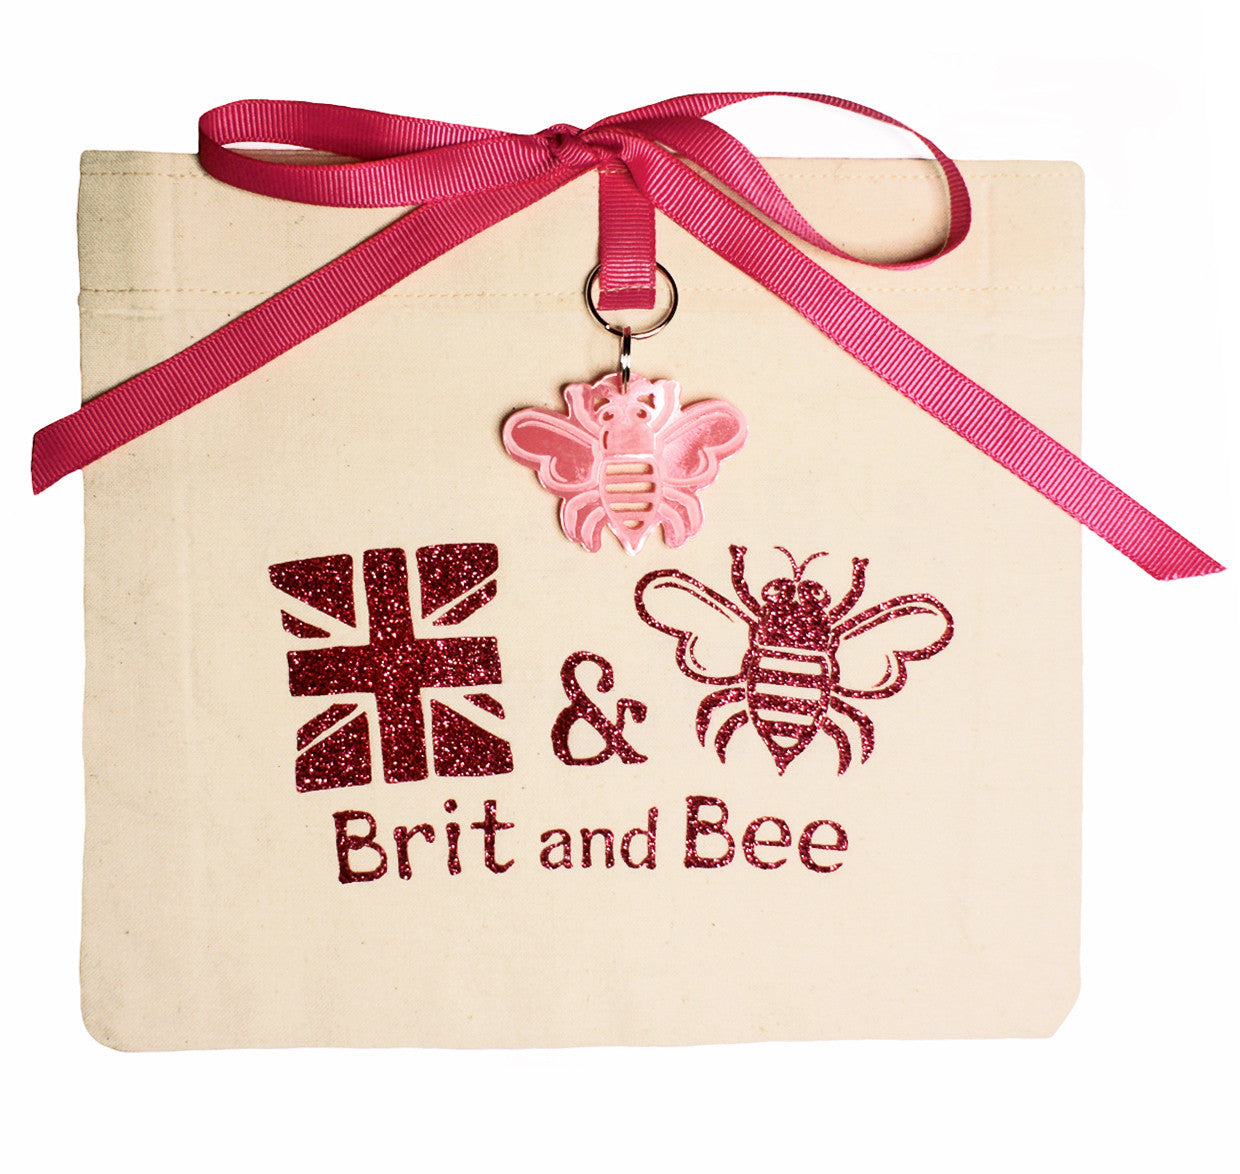 Brit and Bee Sorority Lil' Decal - Phi Mu